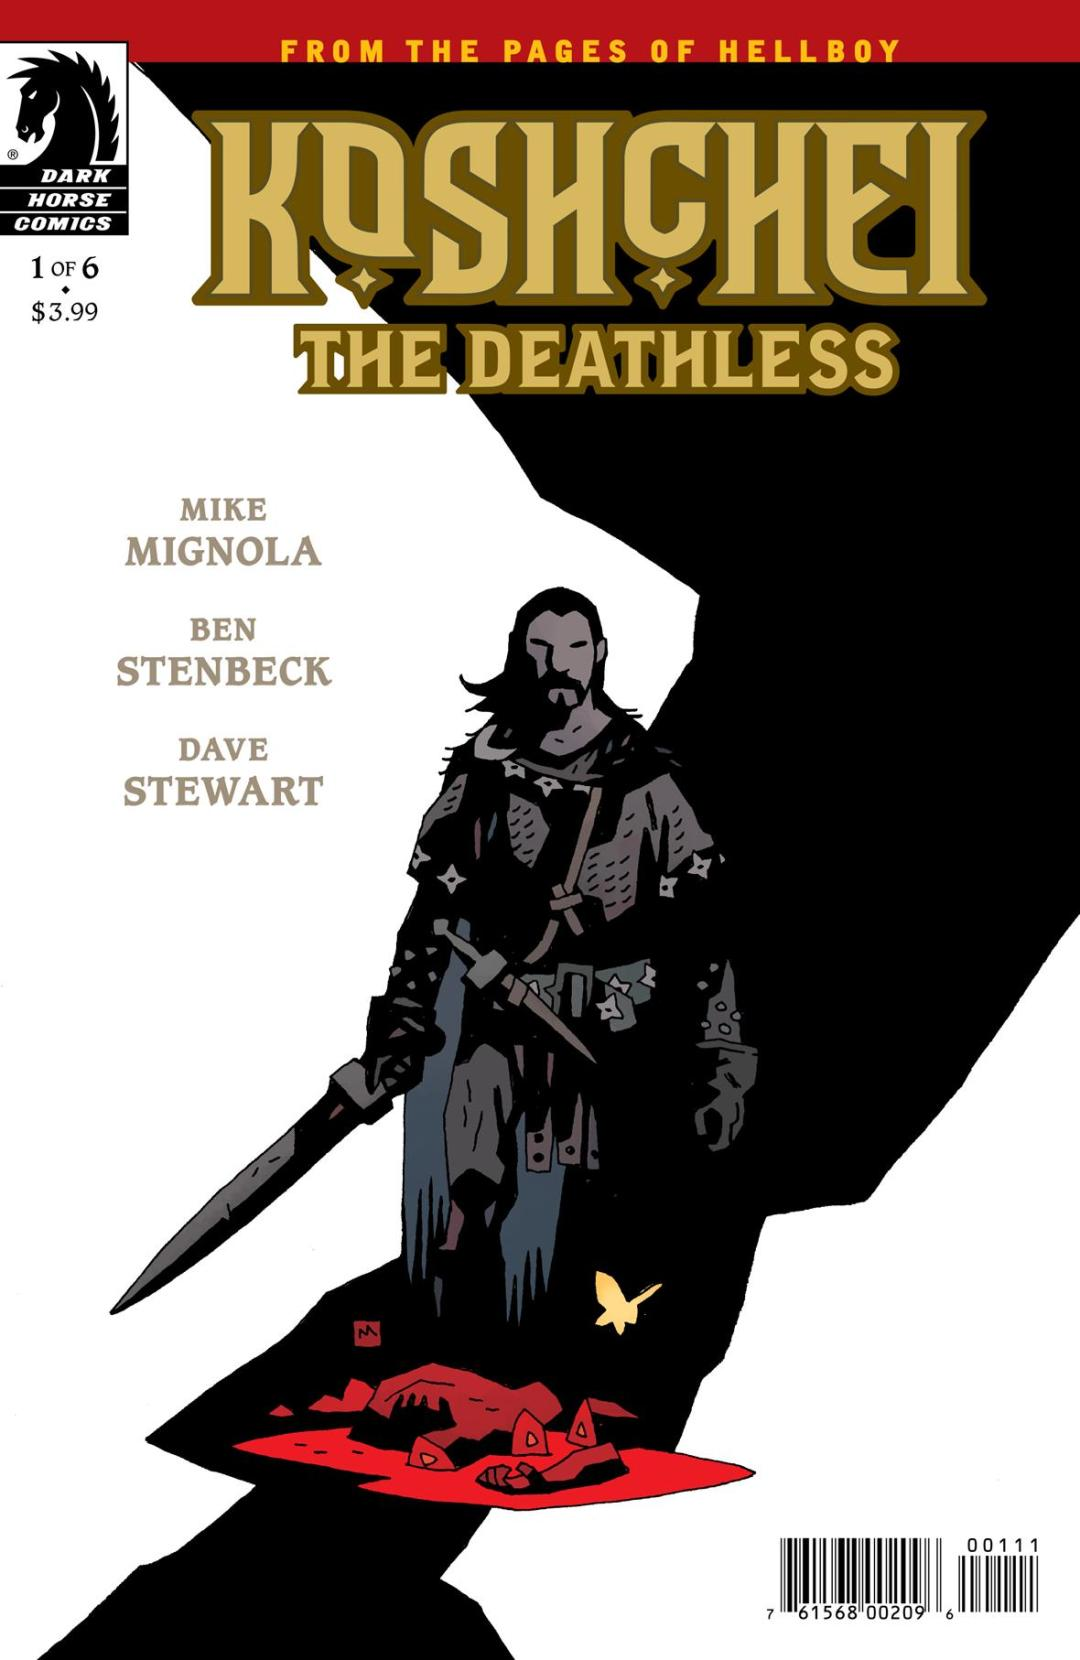 'Hellboy' Creator Mike Mignola Returns to Hell for 'Koshchei the Deathless'